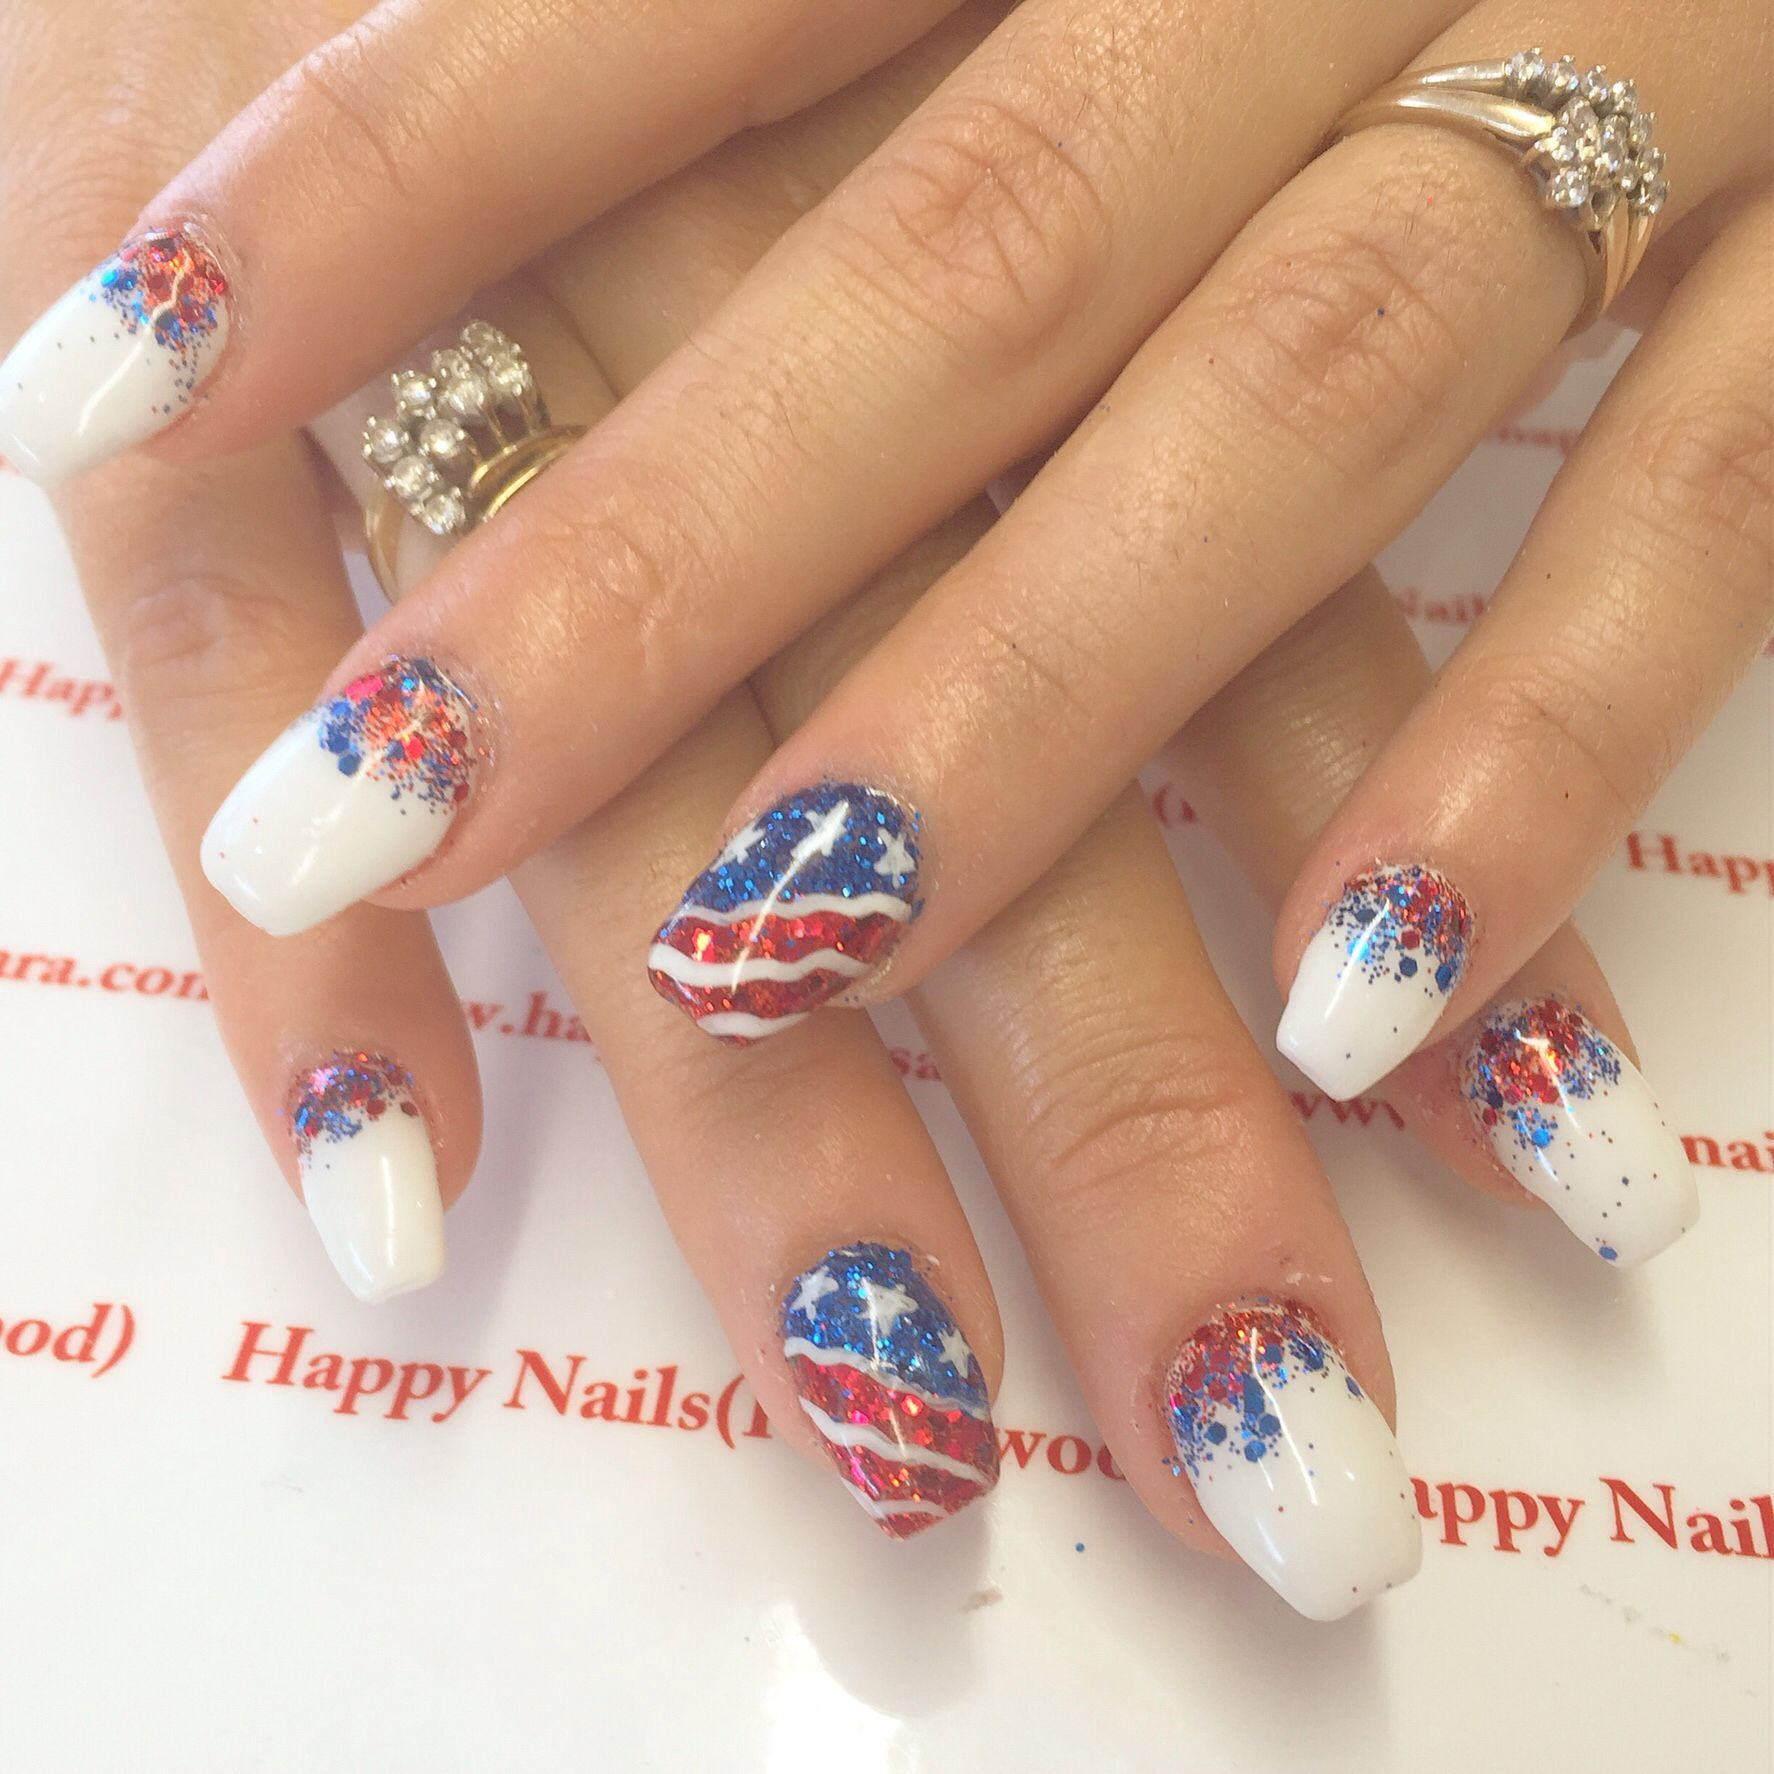 22 Luxury Nail Art 4th Of July Fourth Of July Nail Ideas Sparkles Red White And Blue American Flag Creativ Blue Nail Art Red Acrylic Nails Blue Acrylic Nails